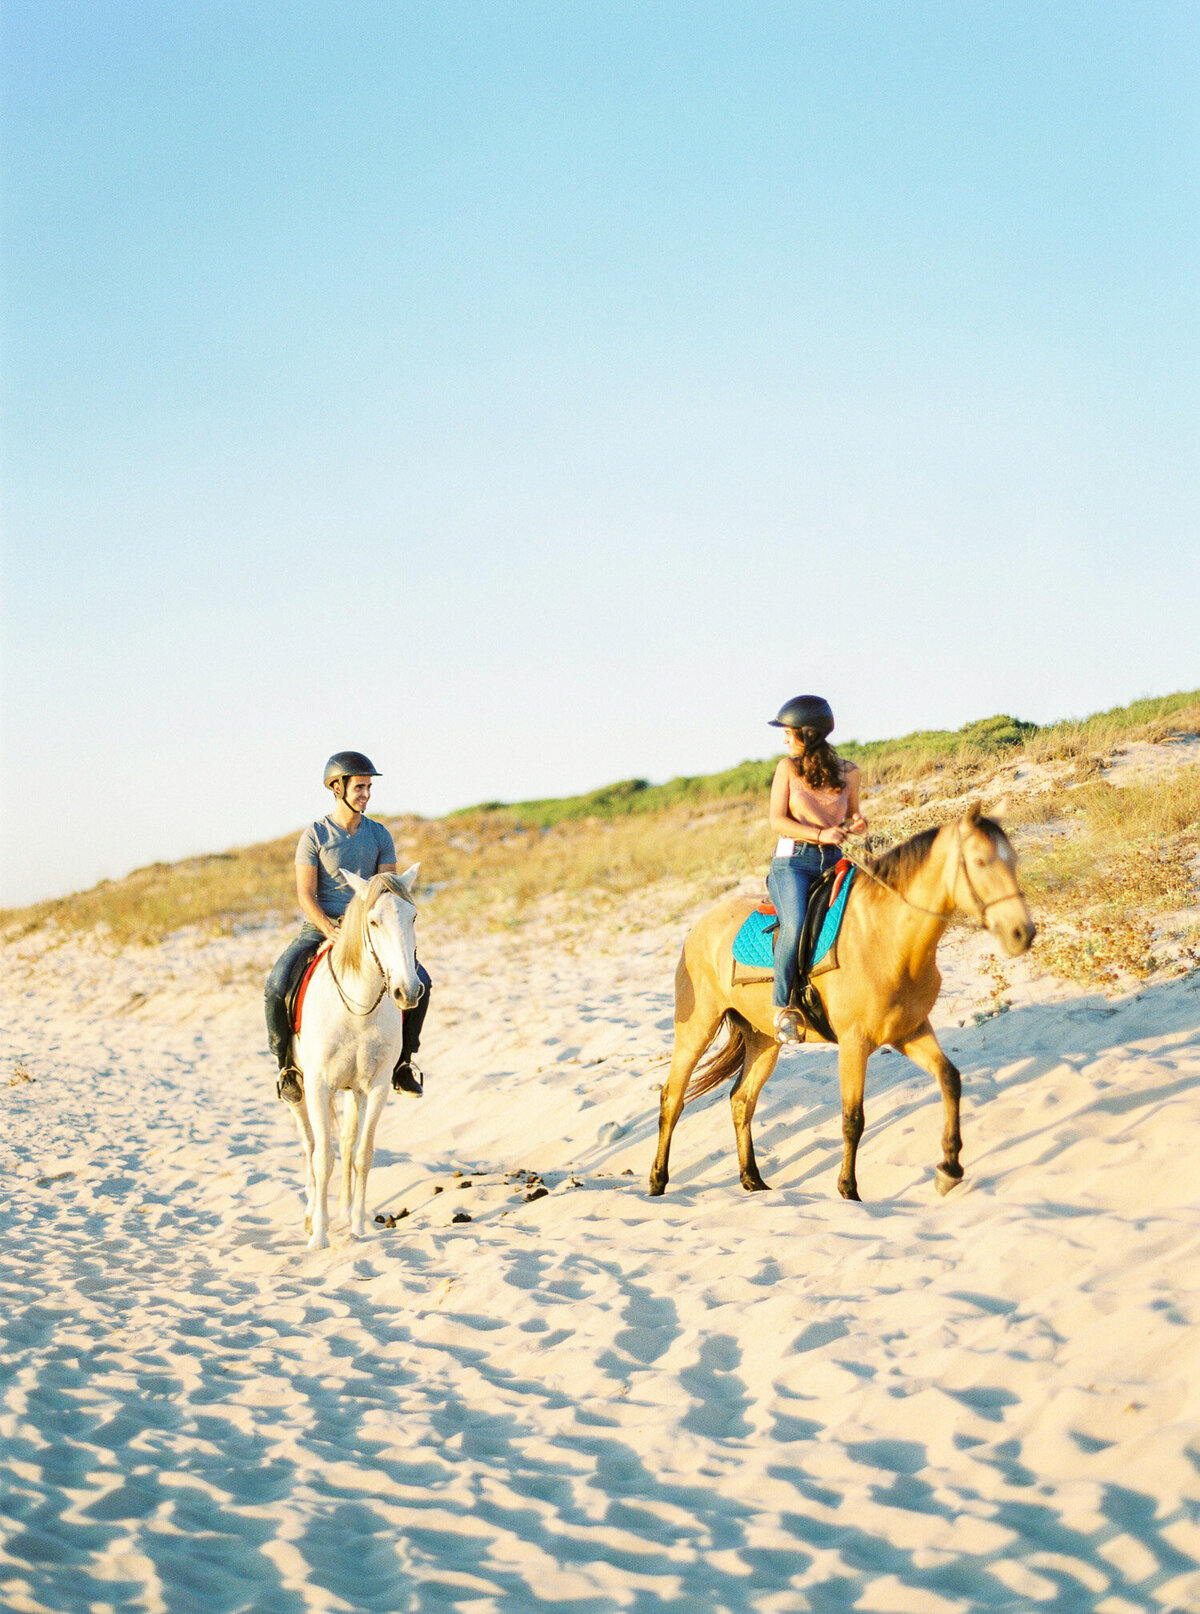 beach_horseback_riding_wedding_proposal-23